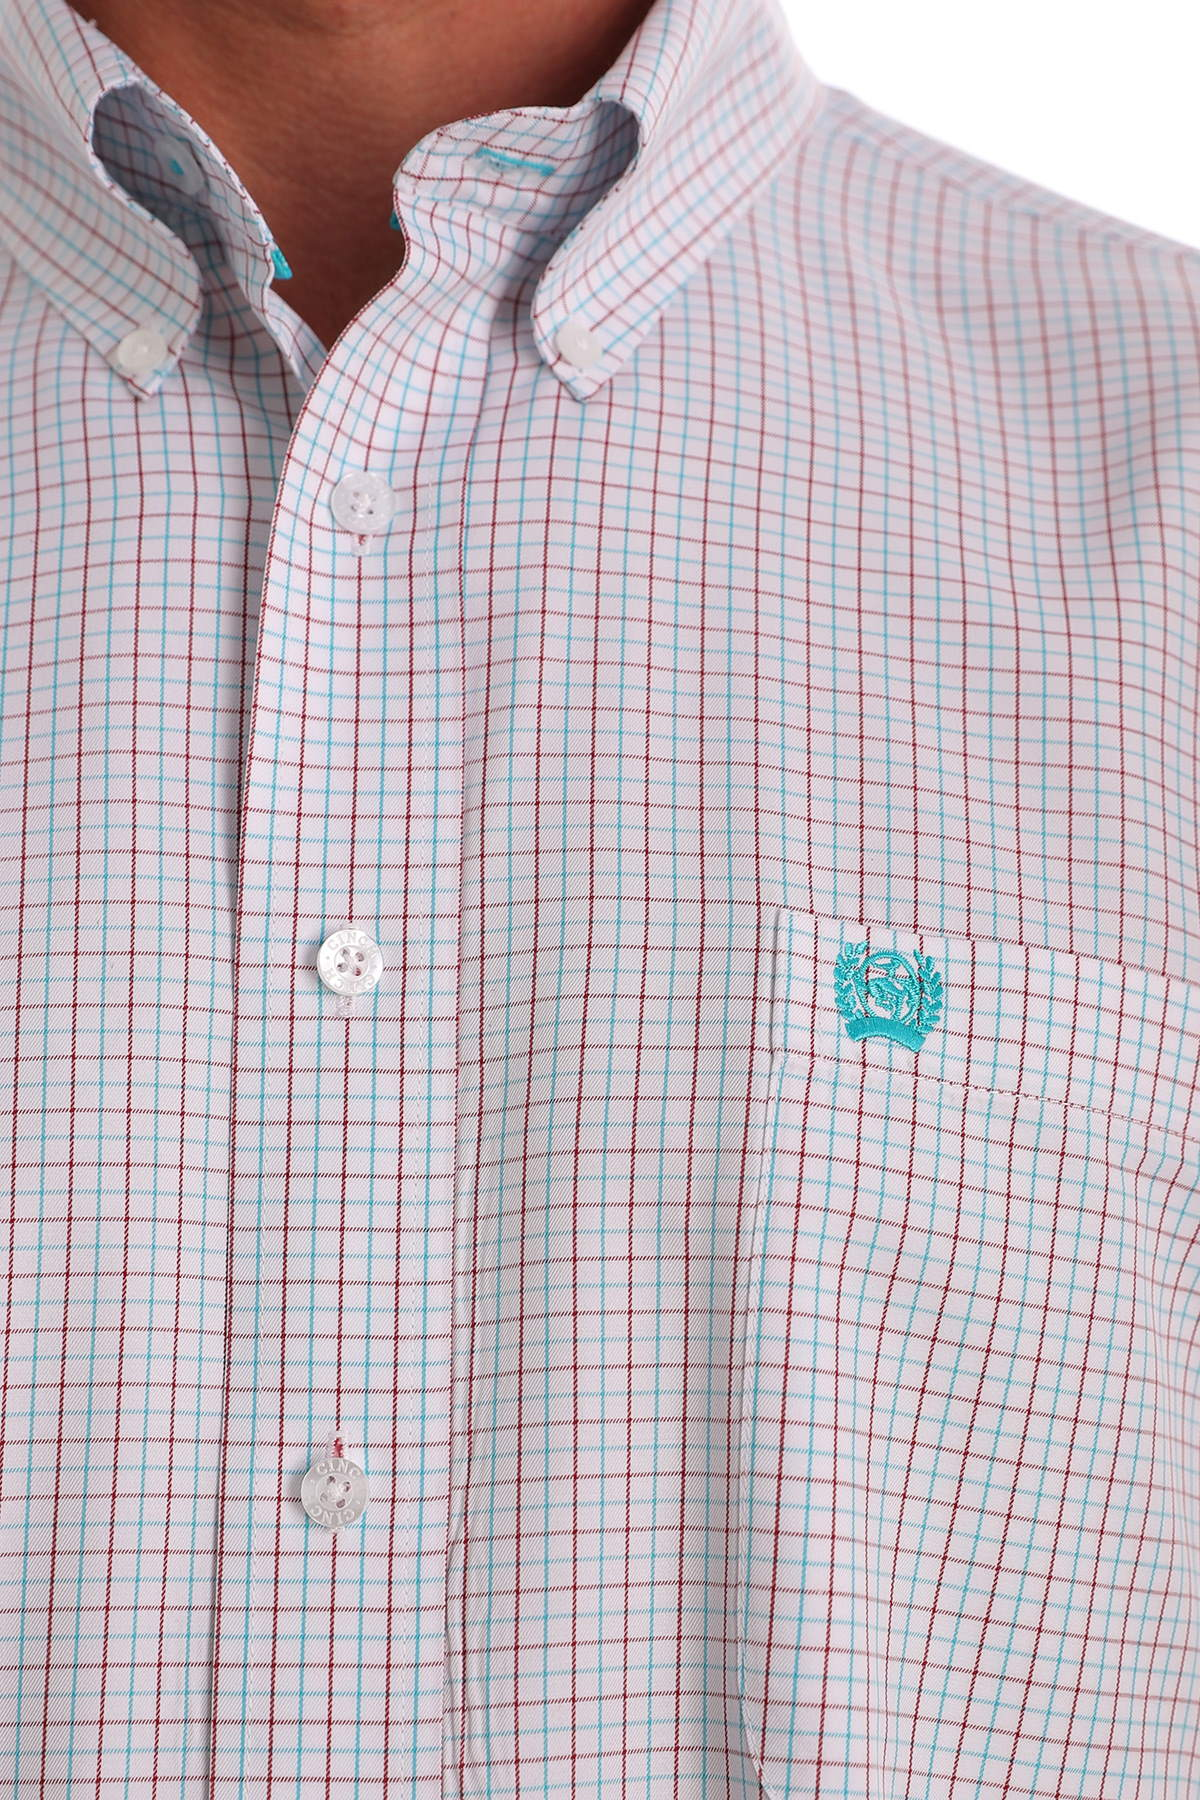 Cinch Classic Fit Men's Long Sleeve White and Blue Plaid